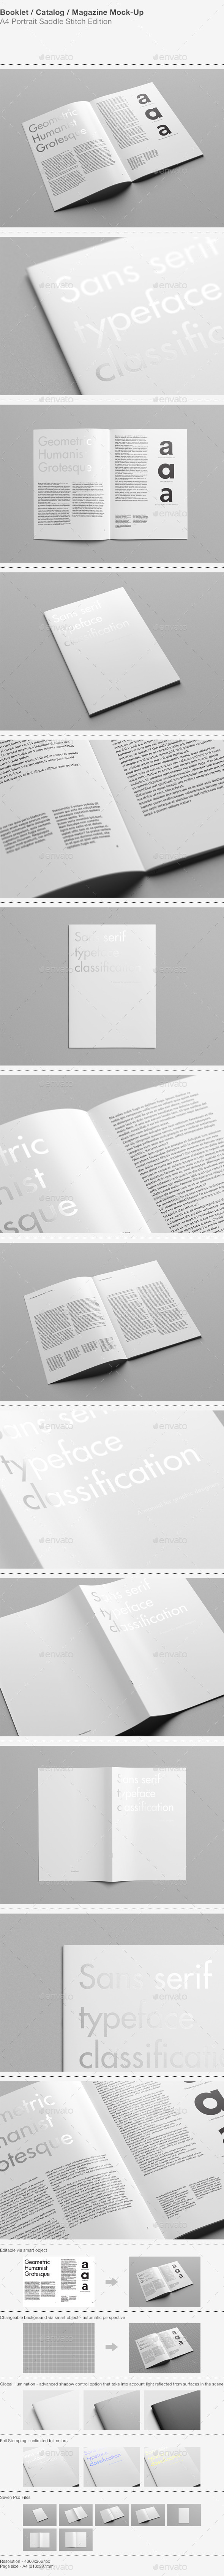 A4 Portrait Catalog / Magazine Mock-Up - Magazines Print